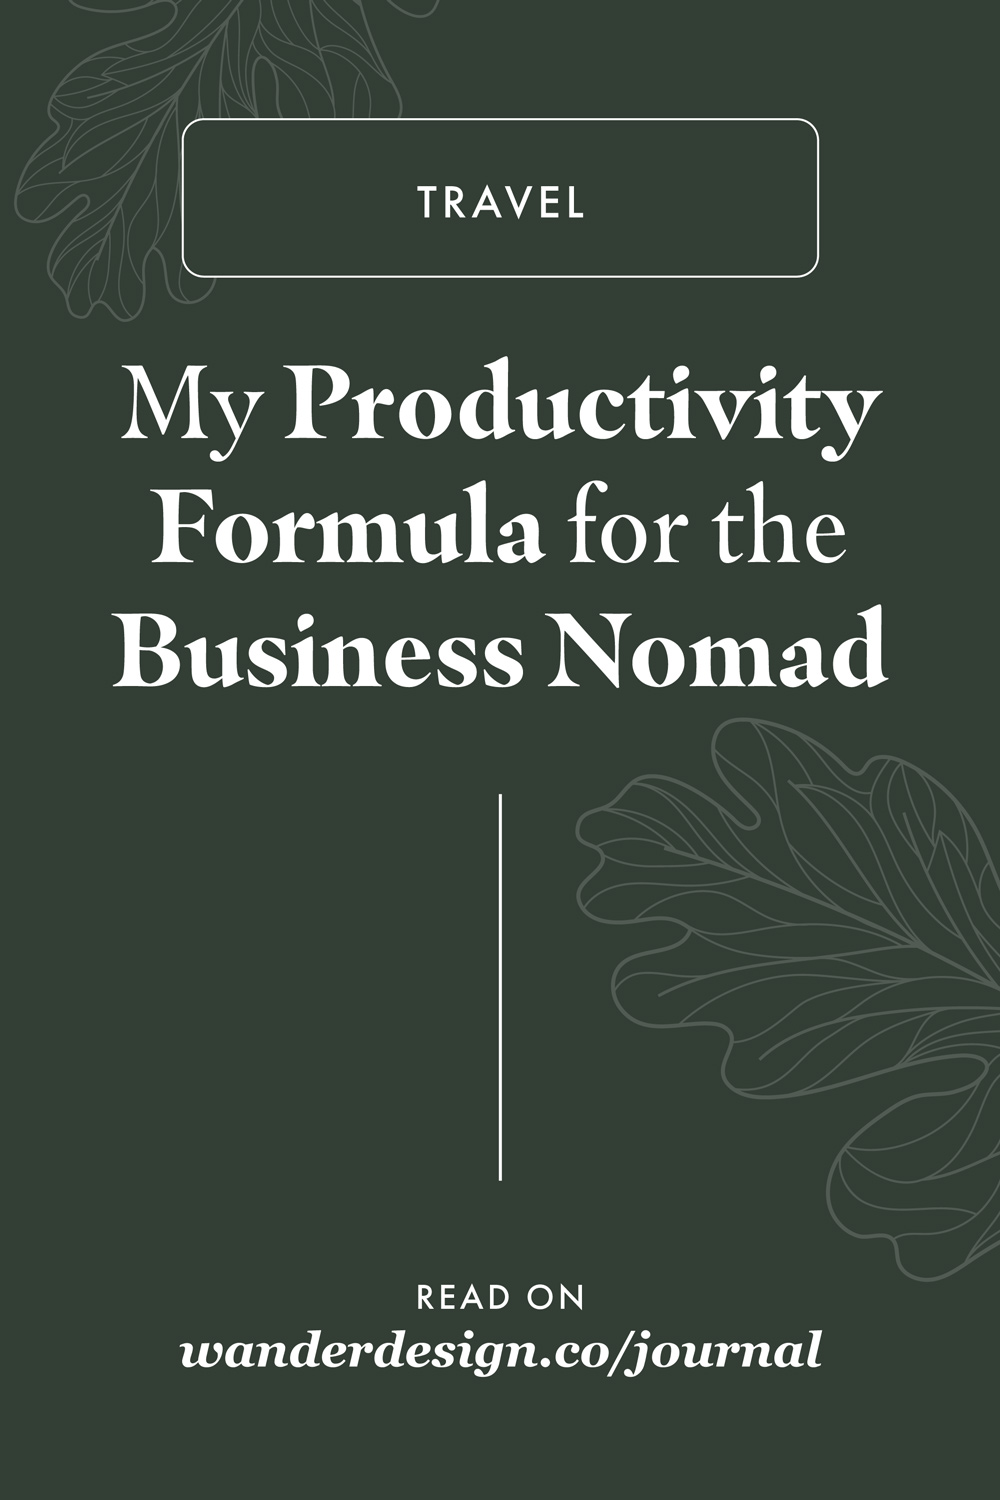 My Productivity Formula for the Business Nomad